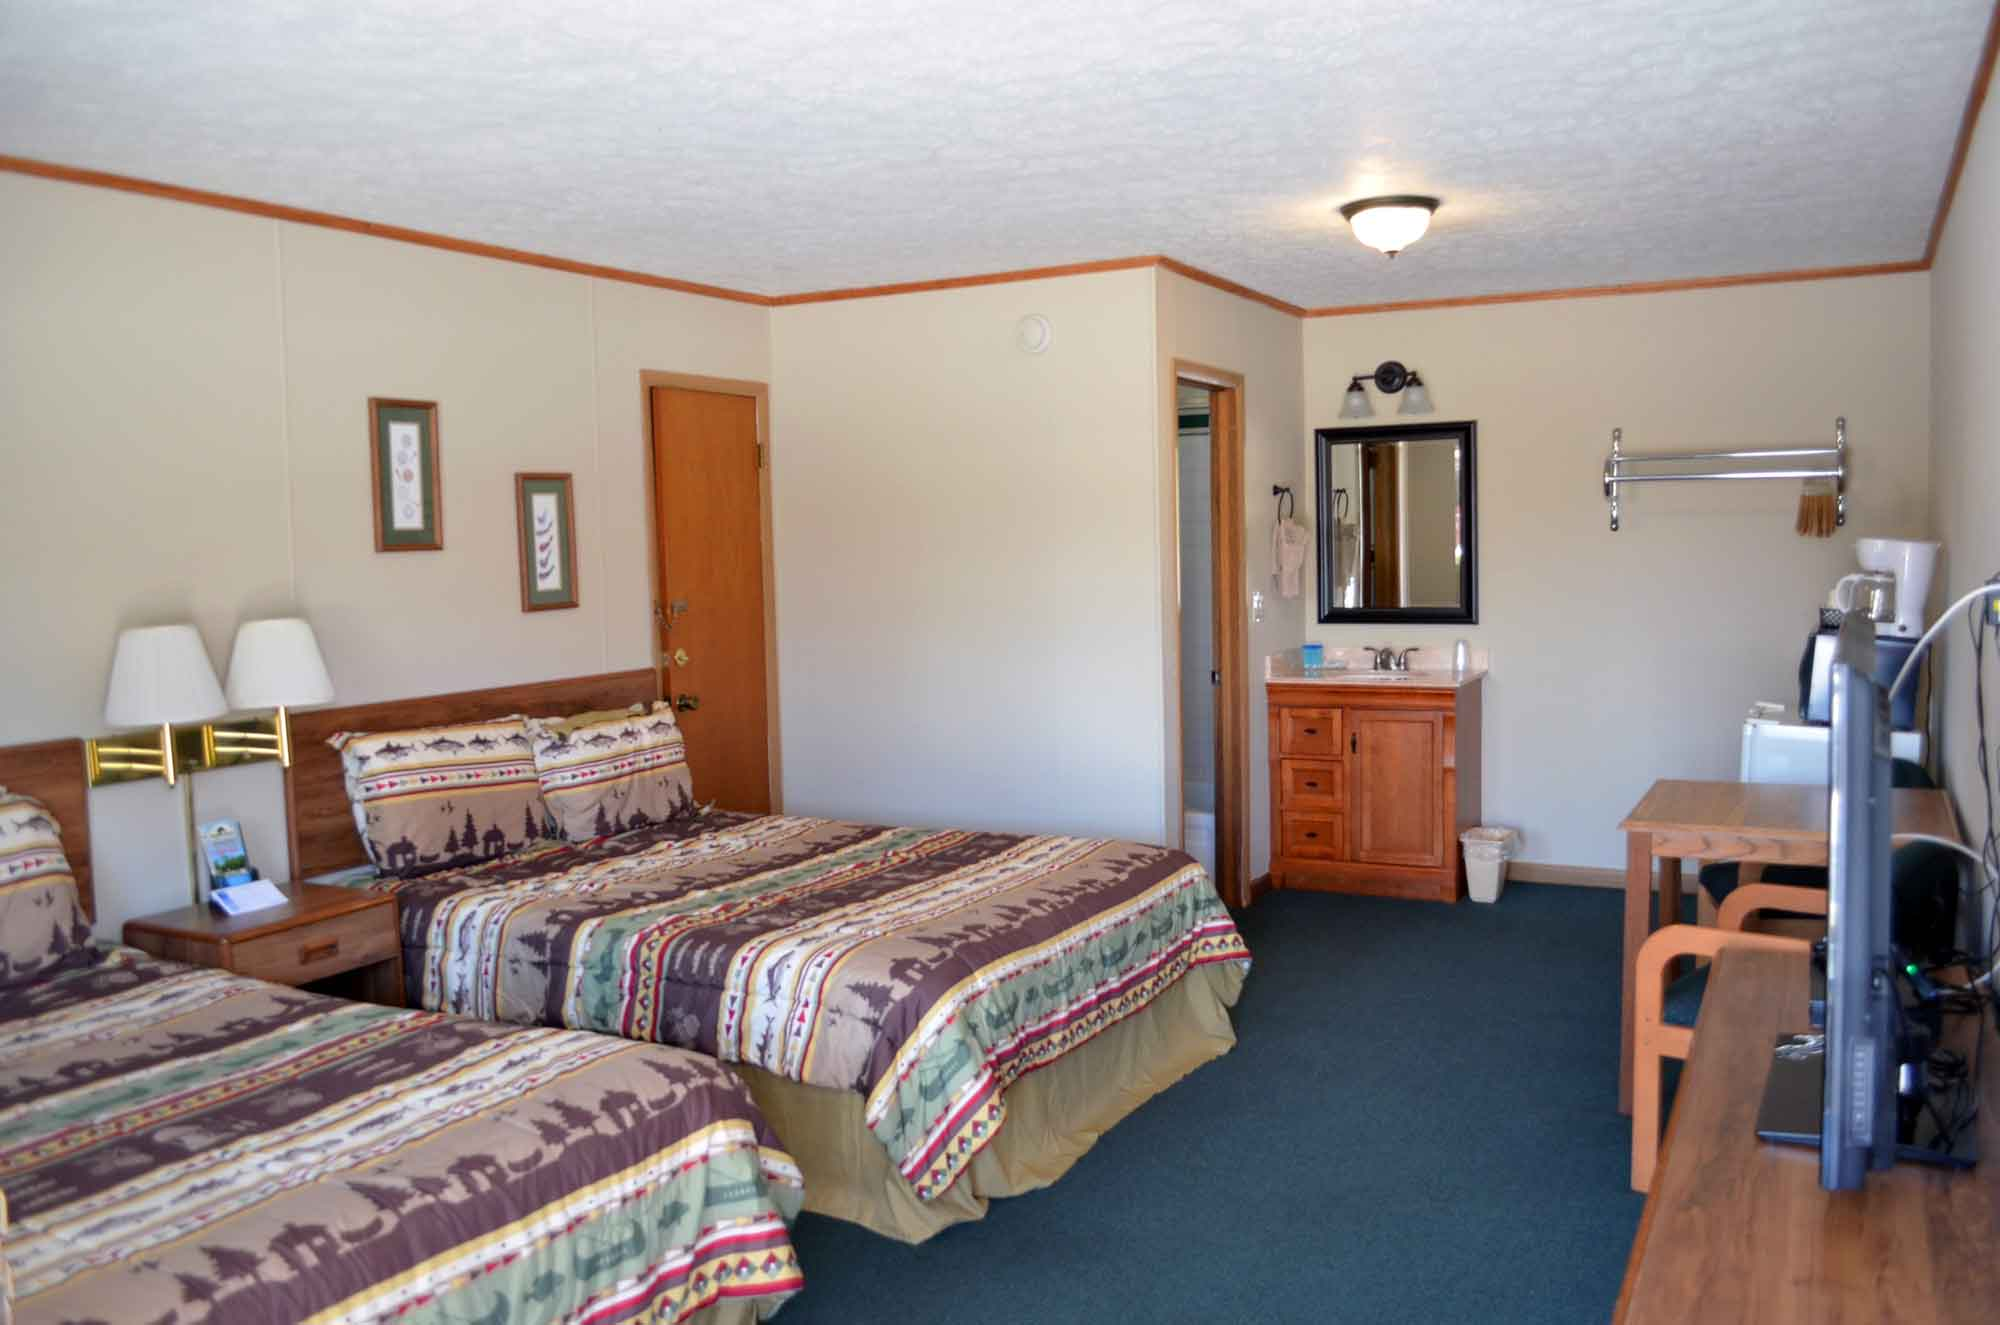 A ton of space for economy lodging while you are in Branson. Each room comes either with 2 queen beds or 1 king.